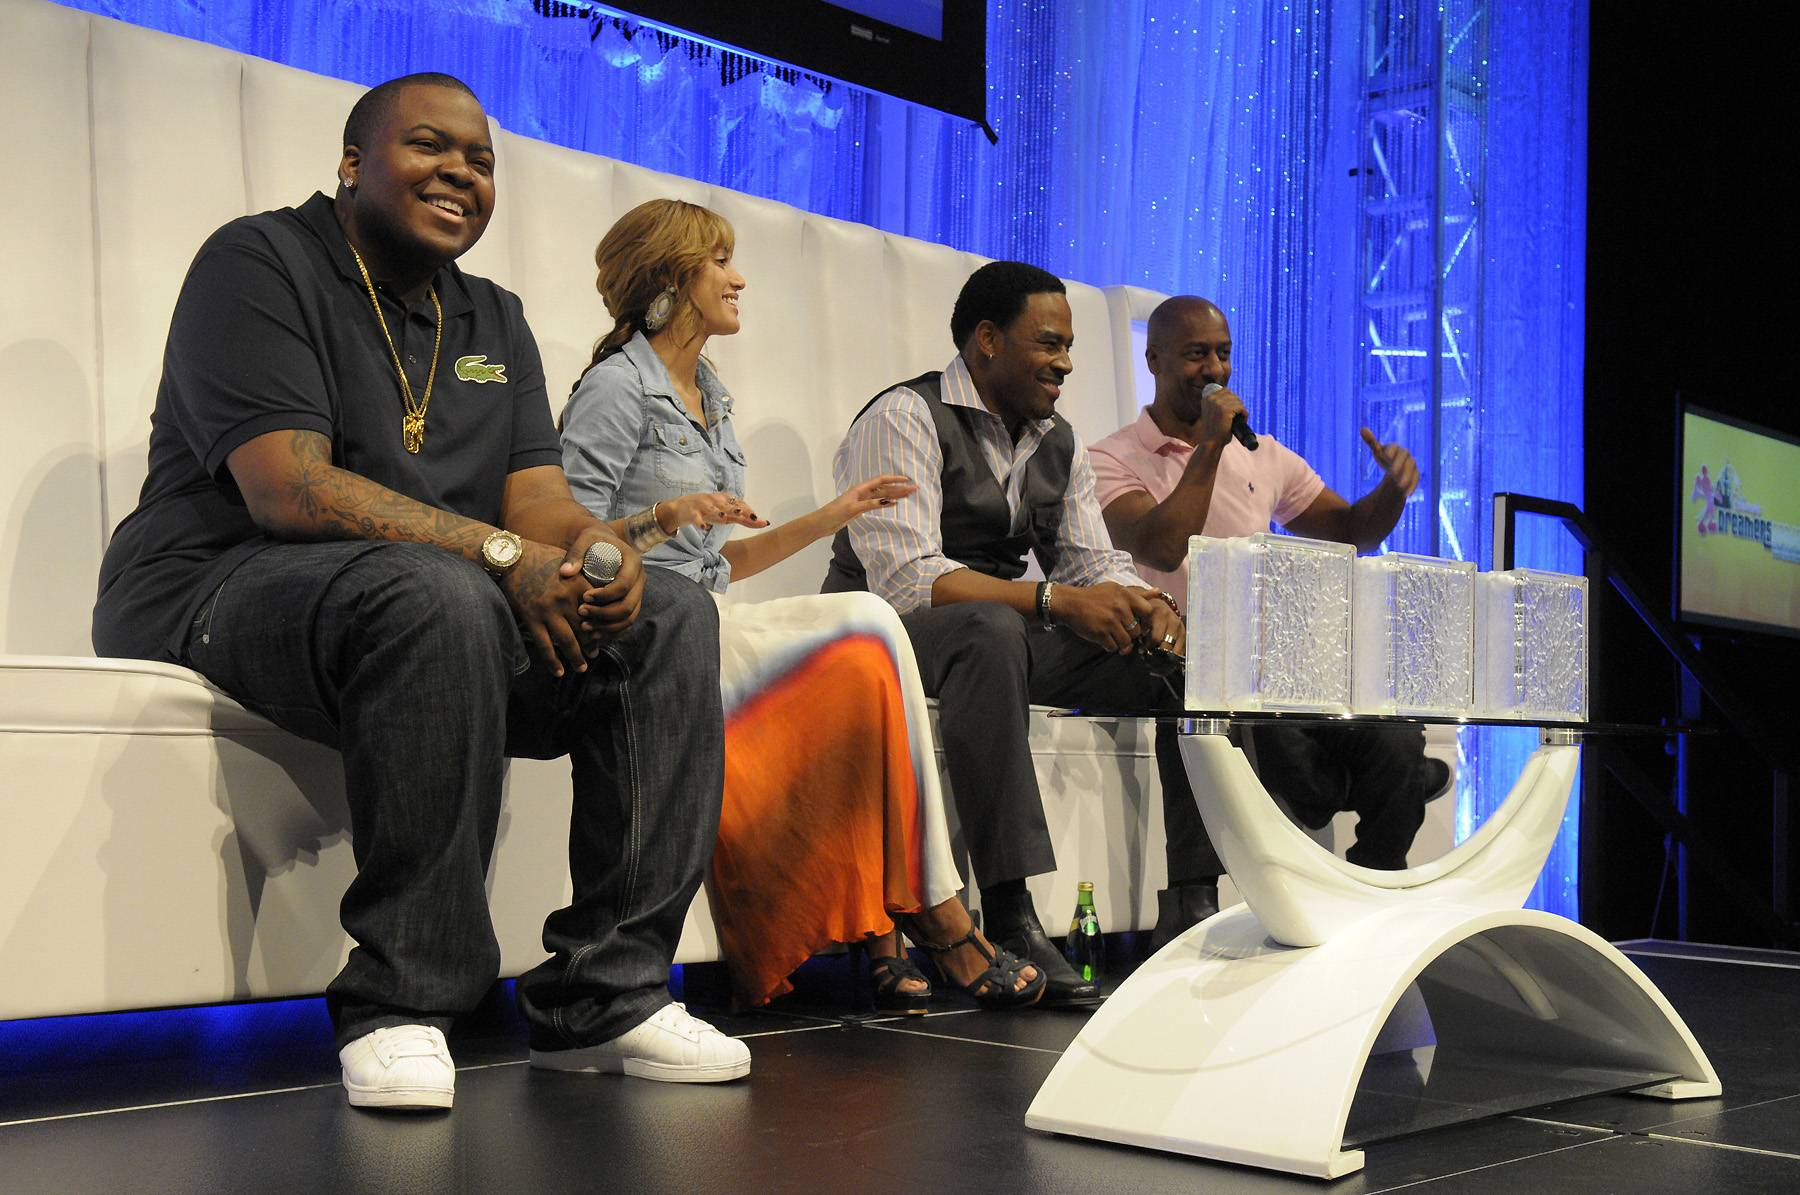 Power Meeting - Supermodel Selita Ebanks, recording star Sean Kingston, actor Lamman Rucker and BET Networks President Stephen Hill participated in the second session of the ?Conversations? panel. (Photo: Phelan Ebenhack)